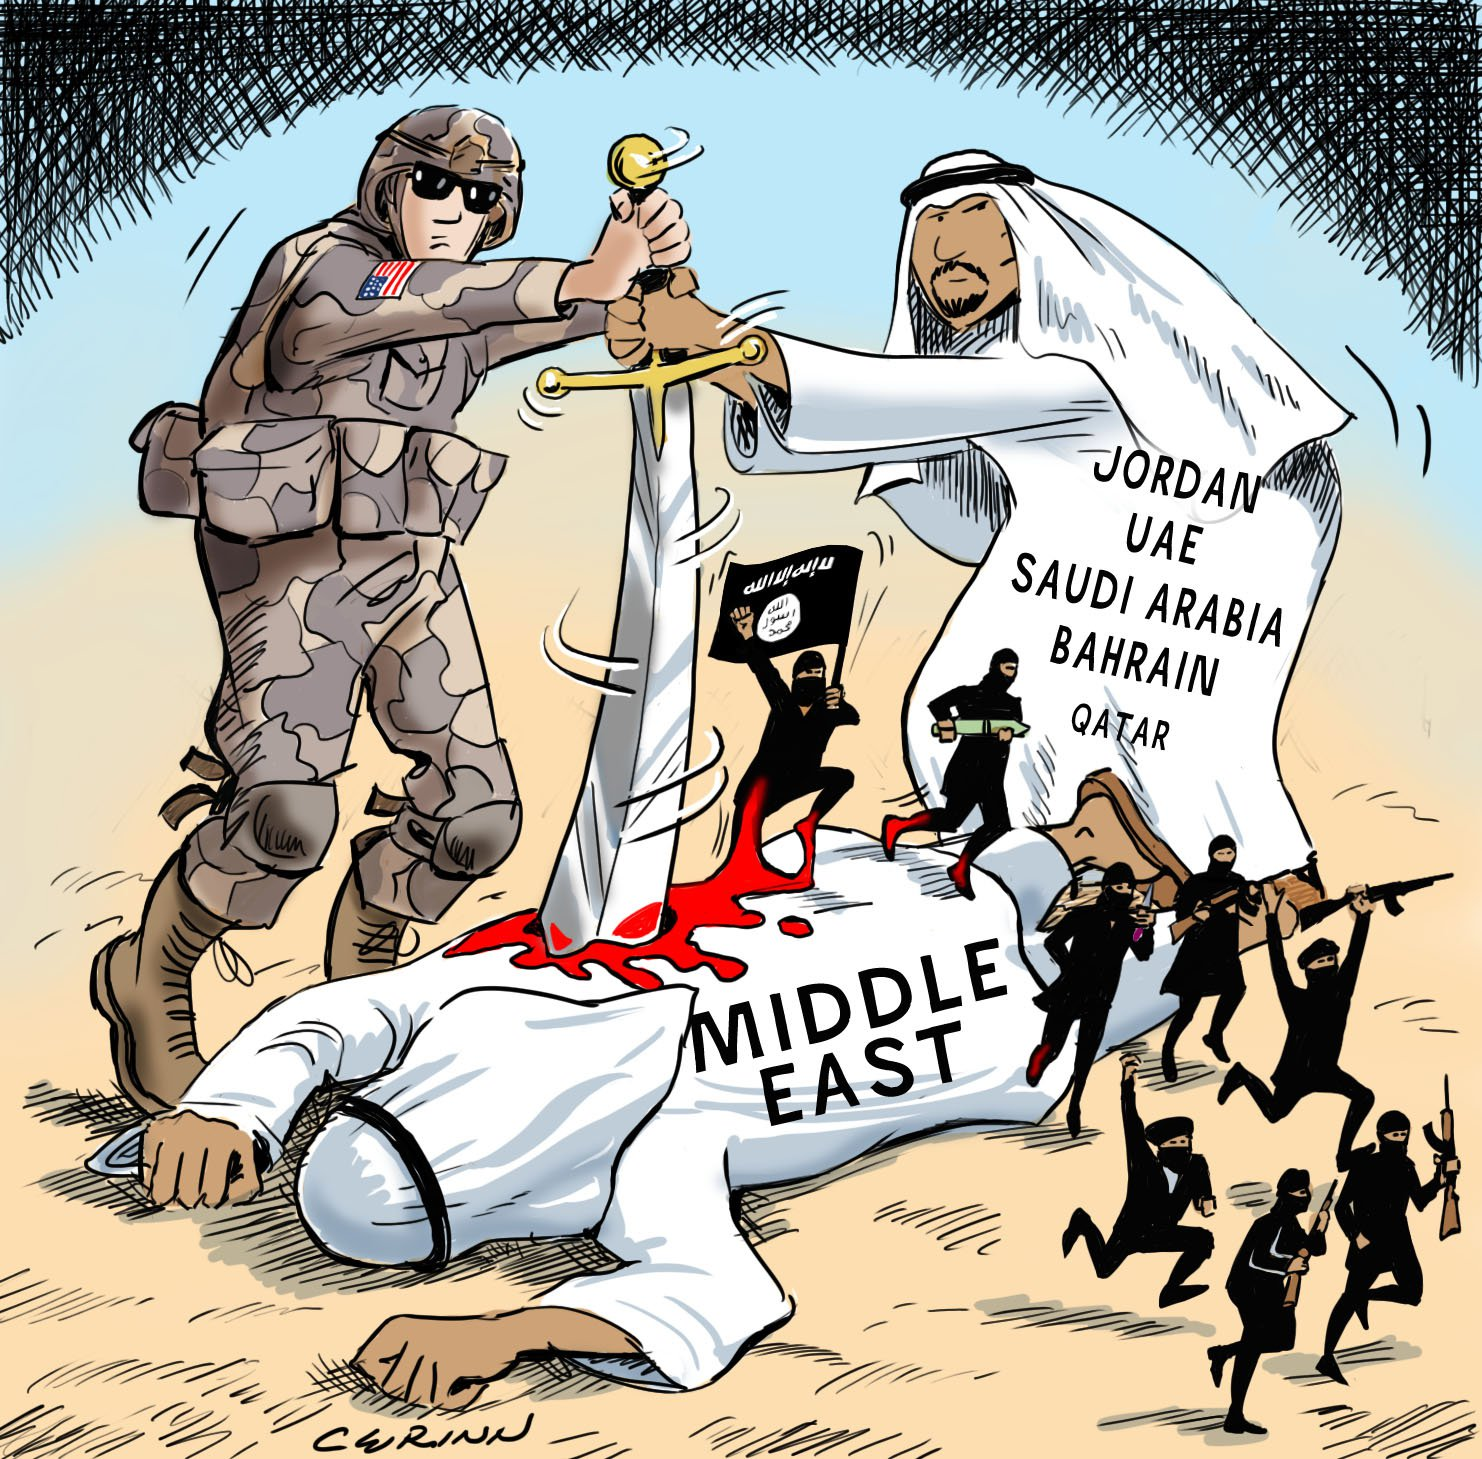 saudi-daesh-isil-cartoon-3